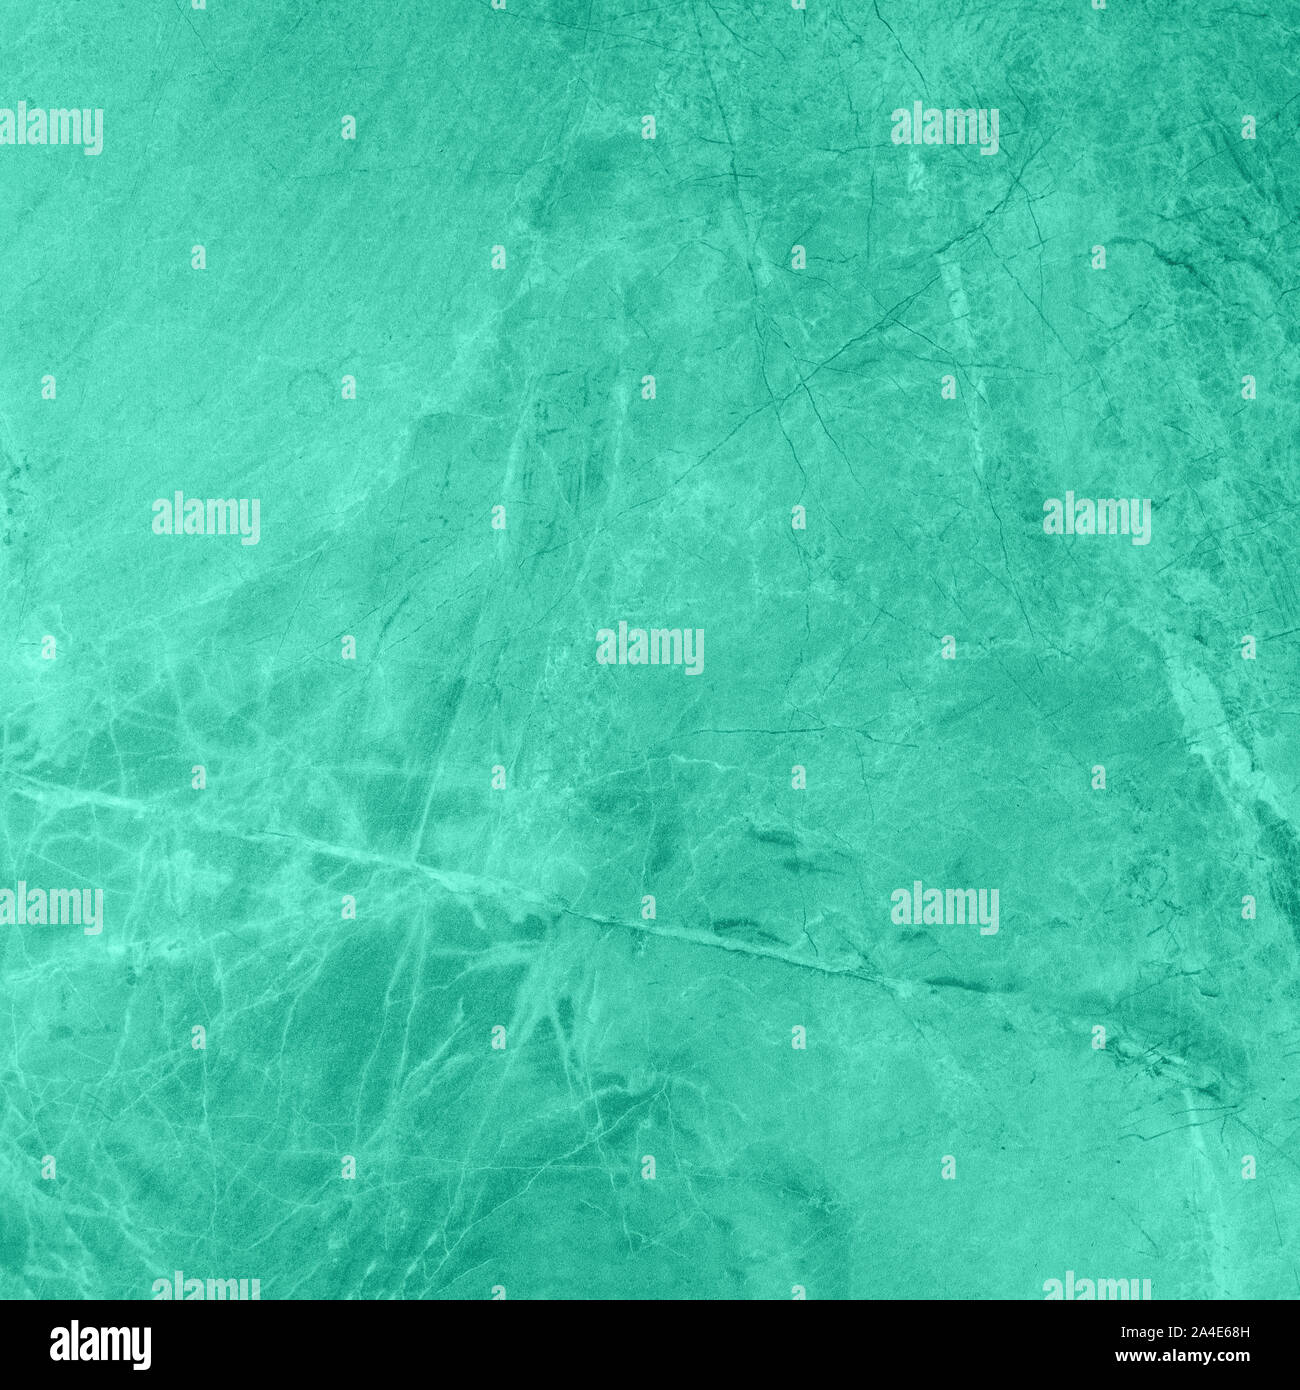 Mint Marble Texture Natural Patterned Stone For Background Copy Space And Design Trendy Green And Turquoise Color Abstract Marble Stone Surface Stock Photo Alamy